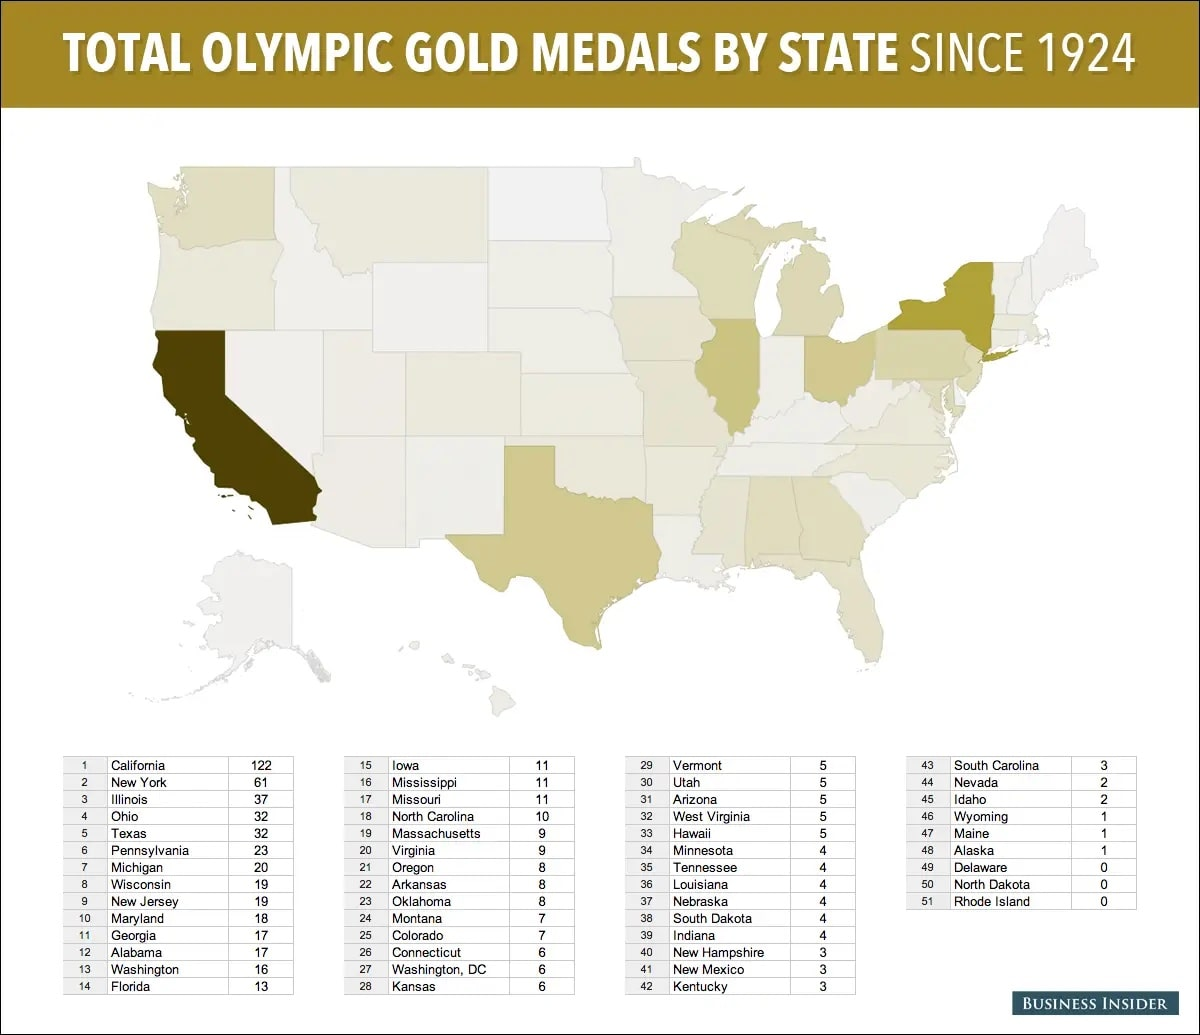 most olympians medals by state